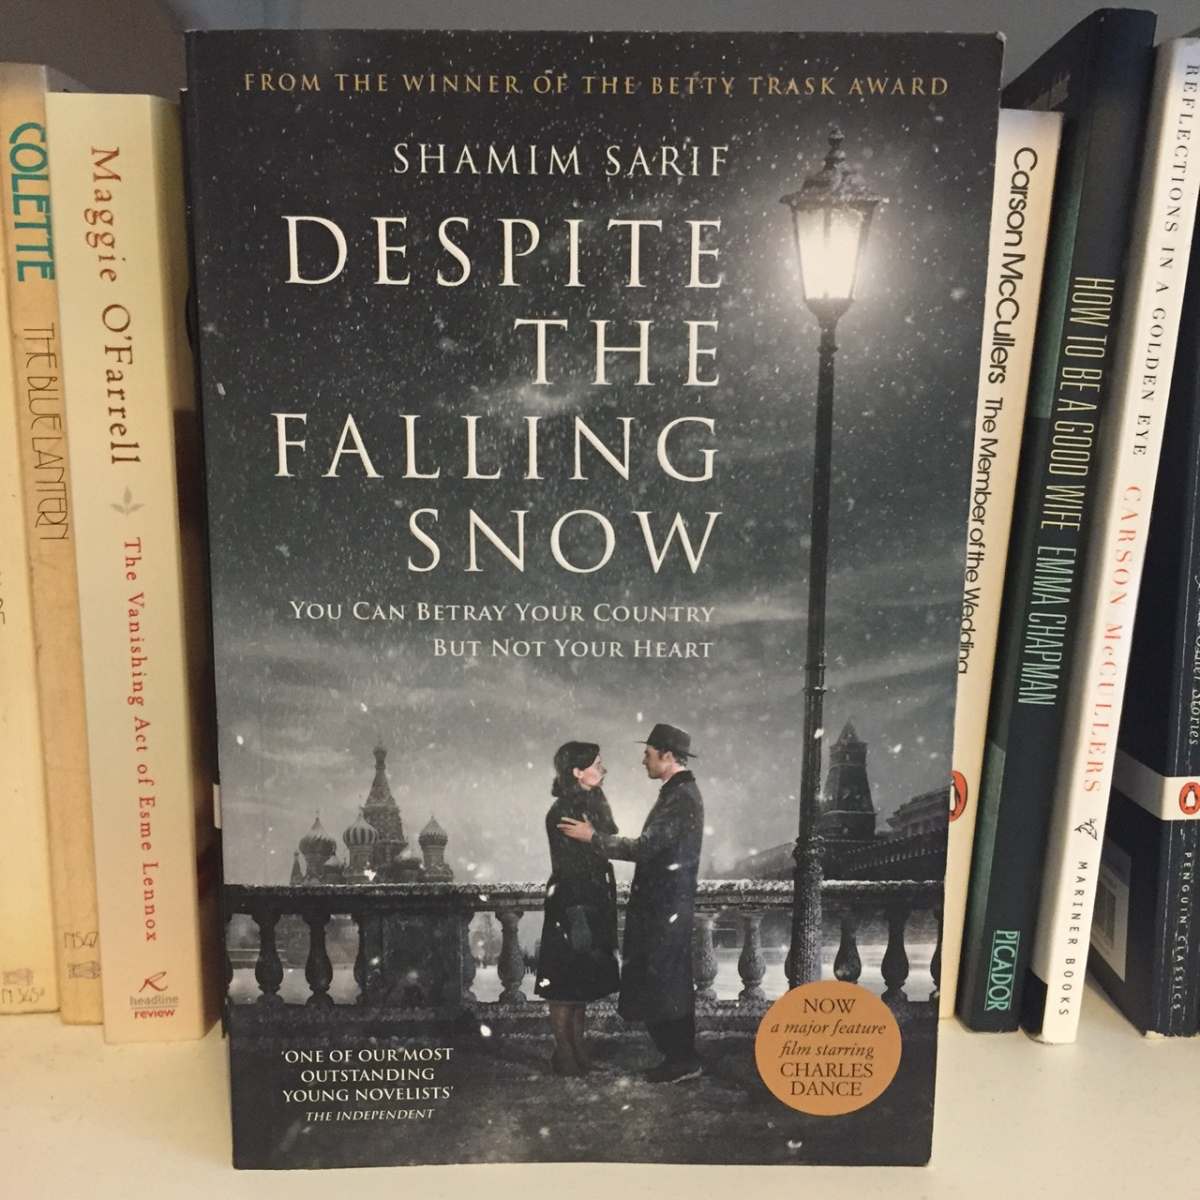 Despite the Falling Snow by Shamim Sarif - blog tour!